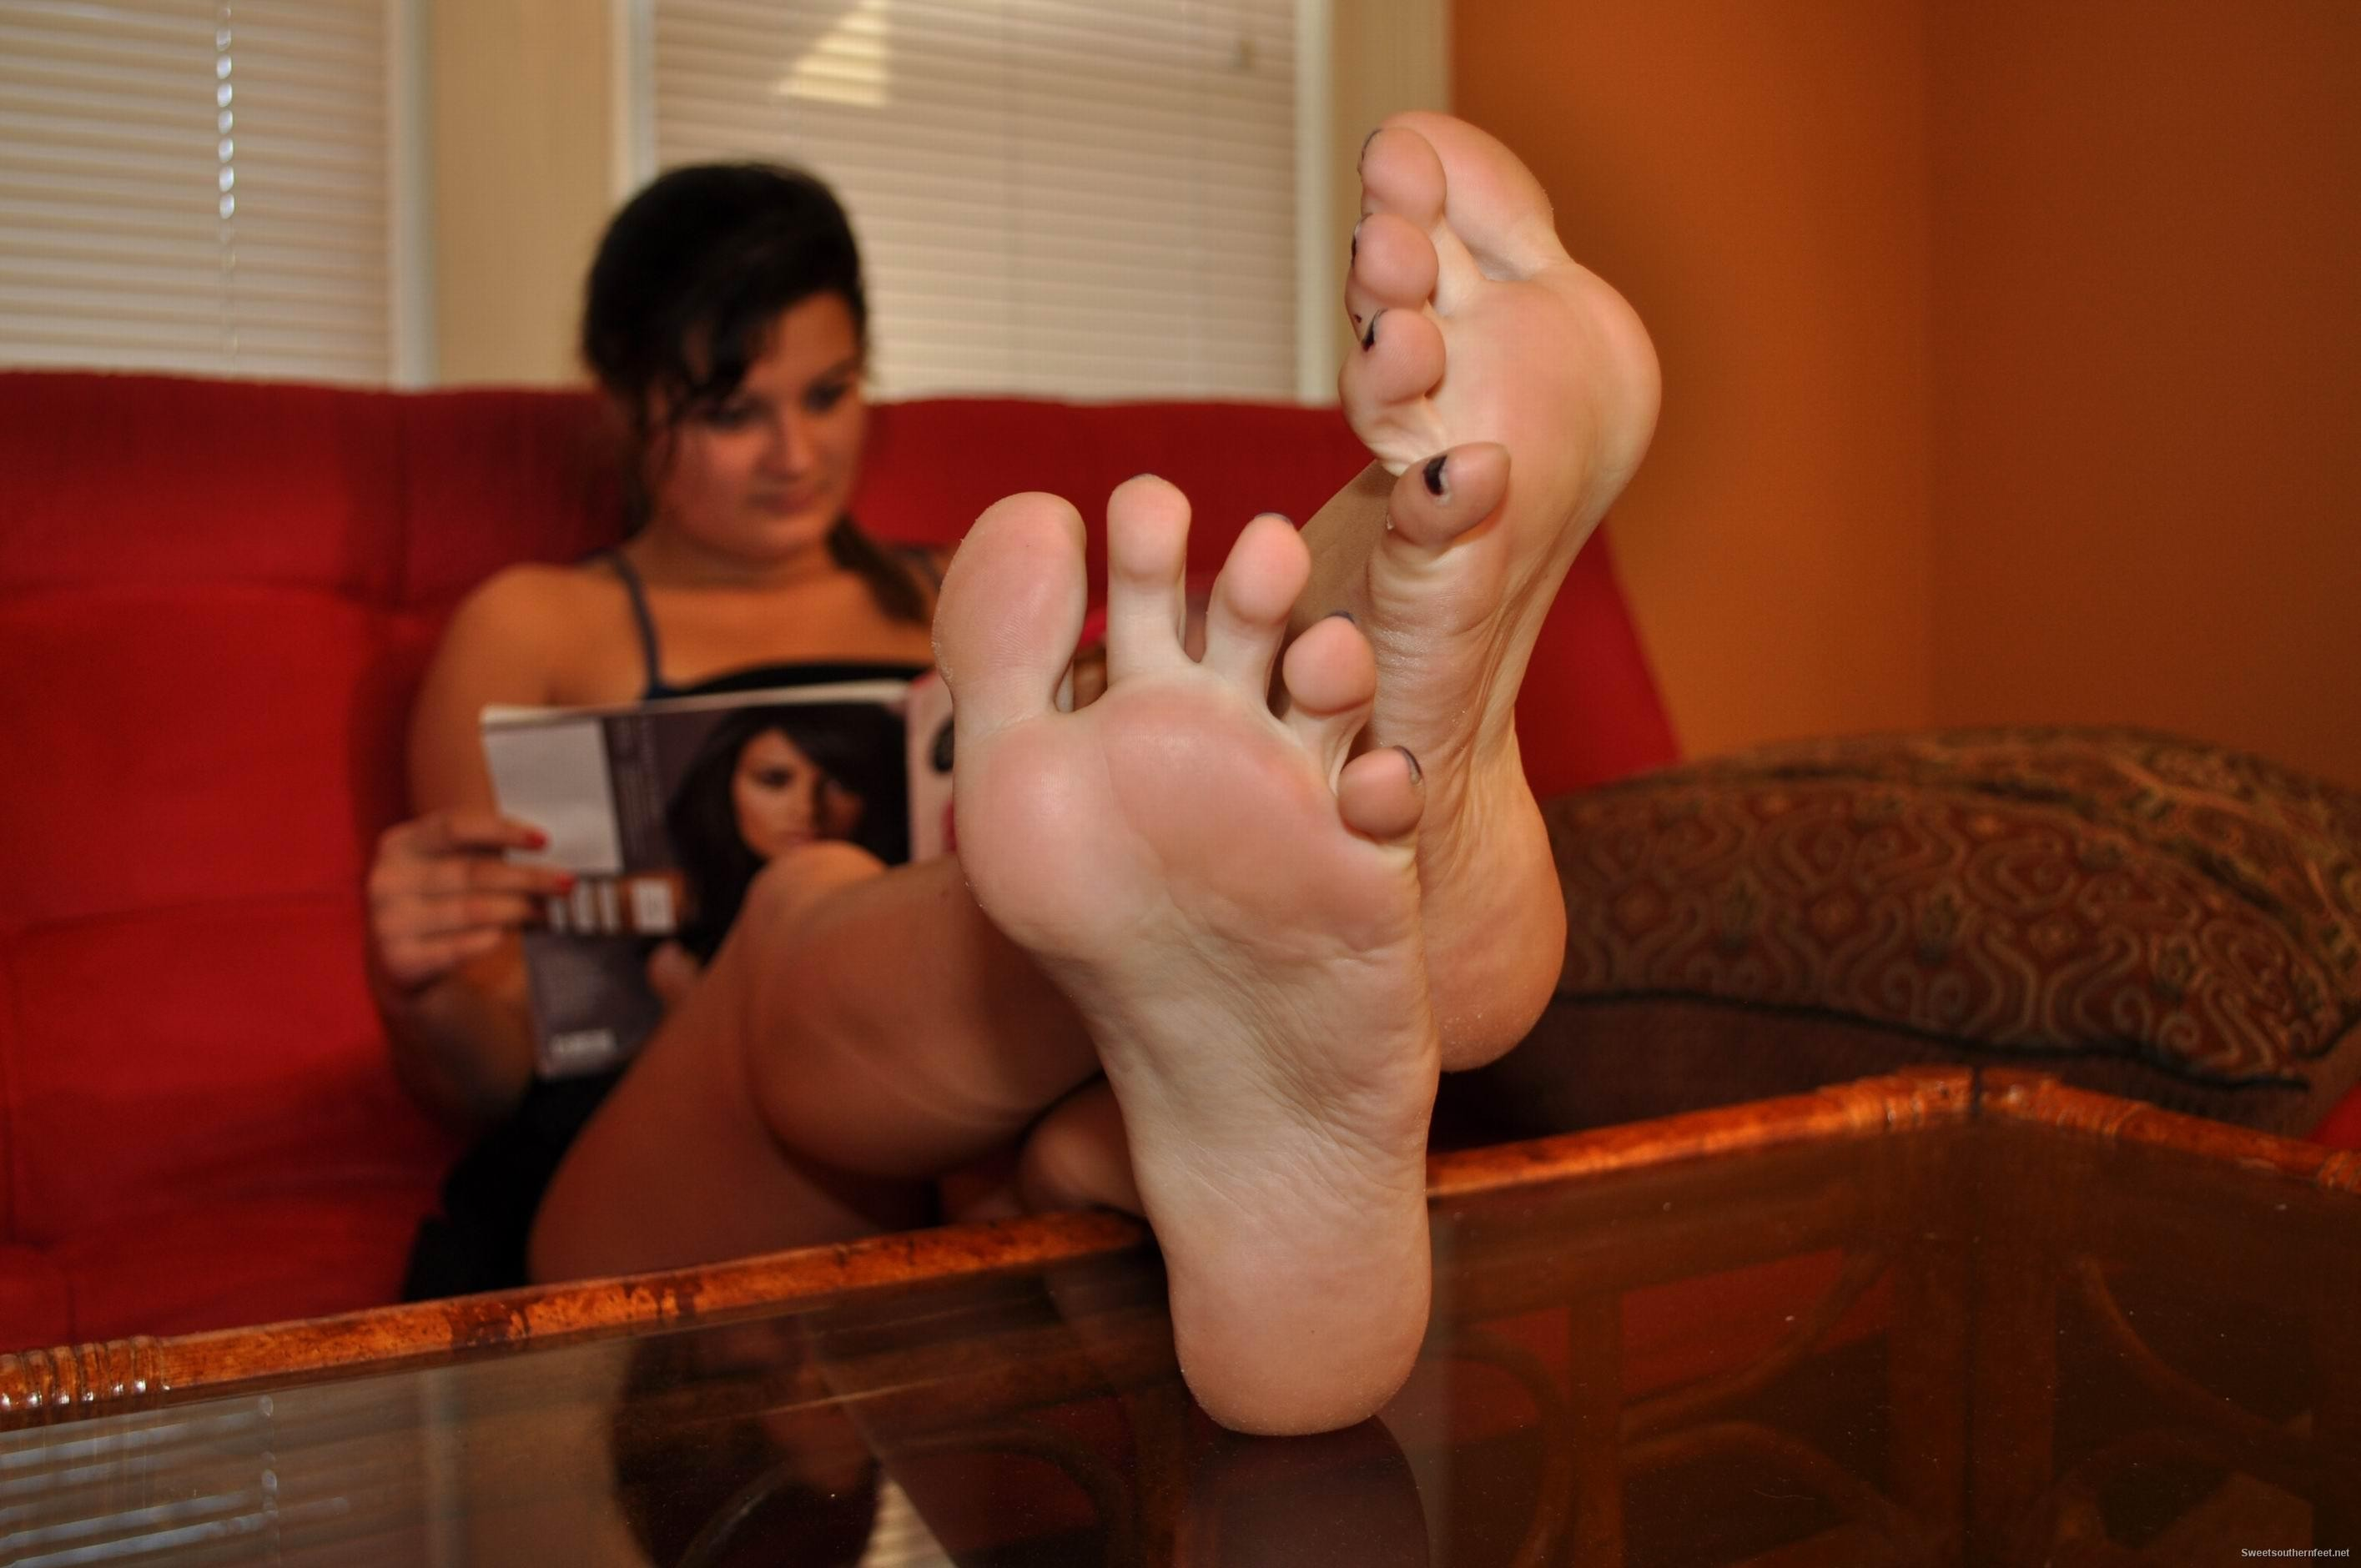 Feet Massage Girlfriend VideoLike